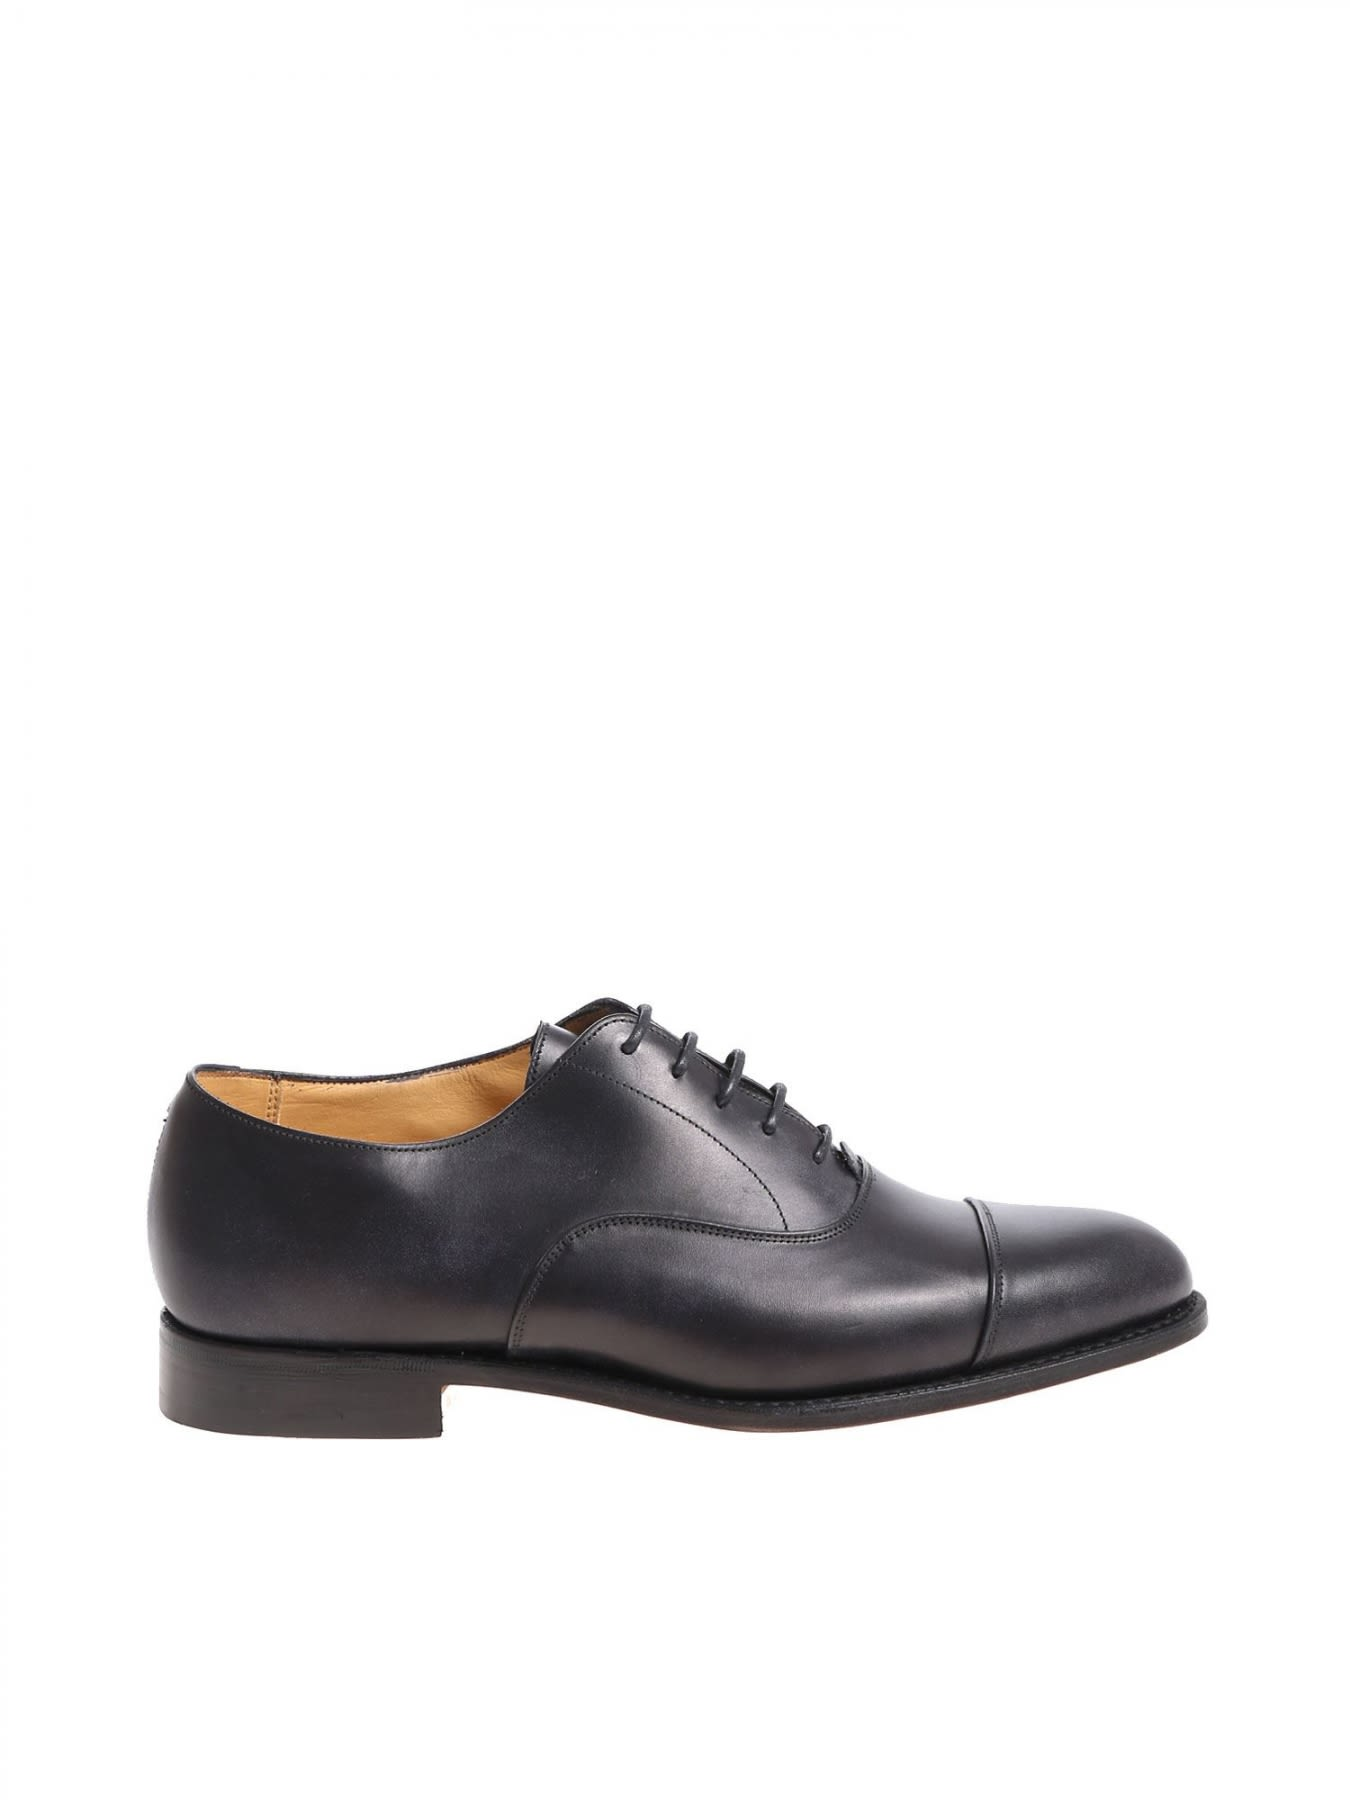 TRICKERS OXFORD LEATHER